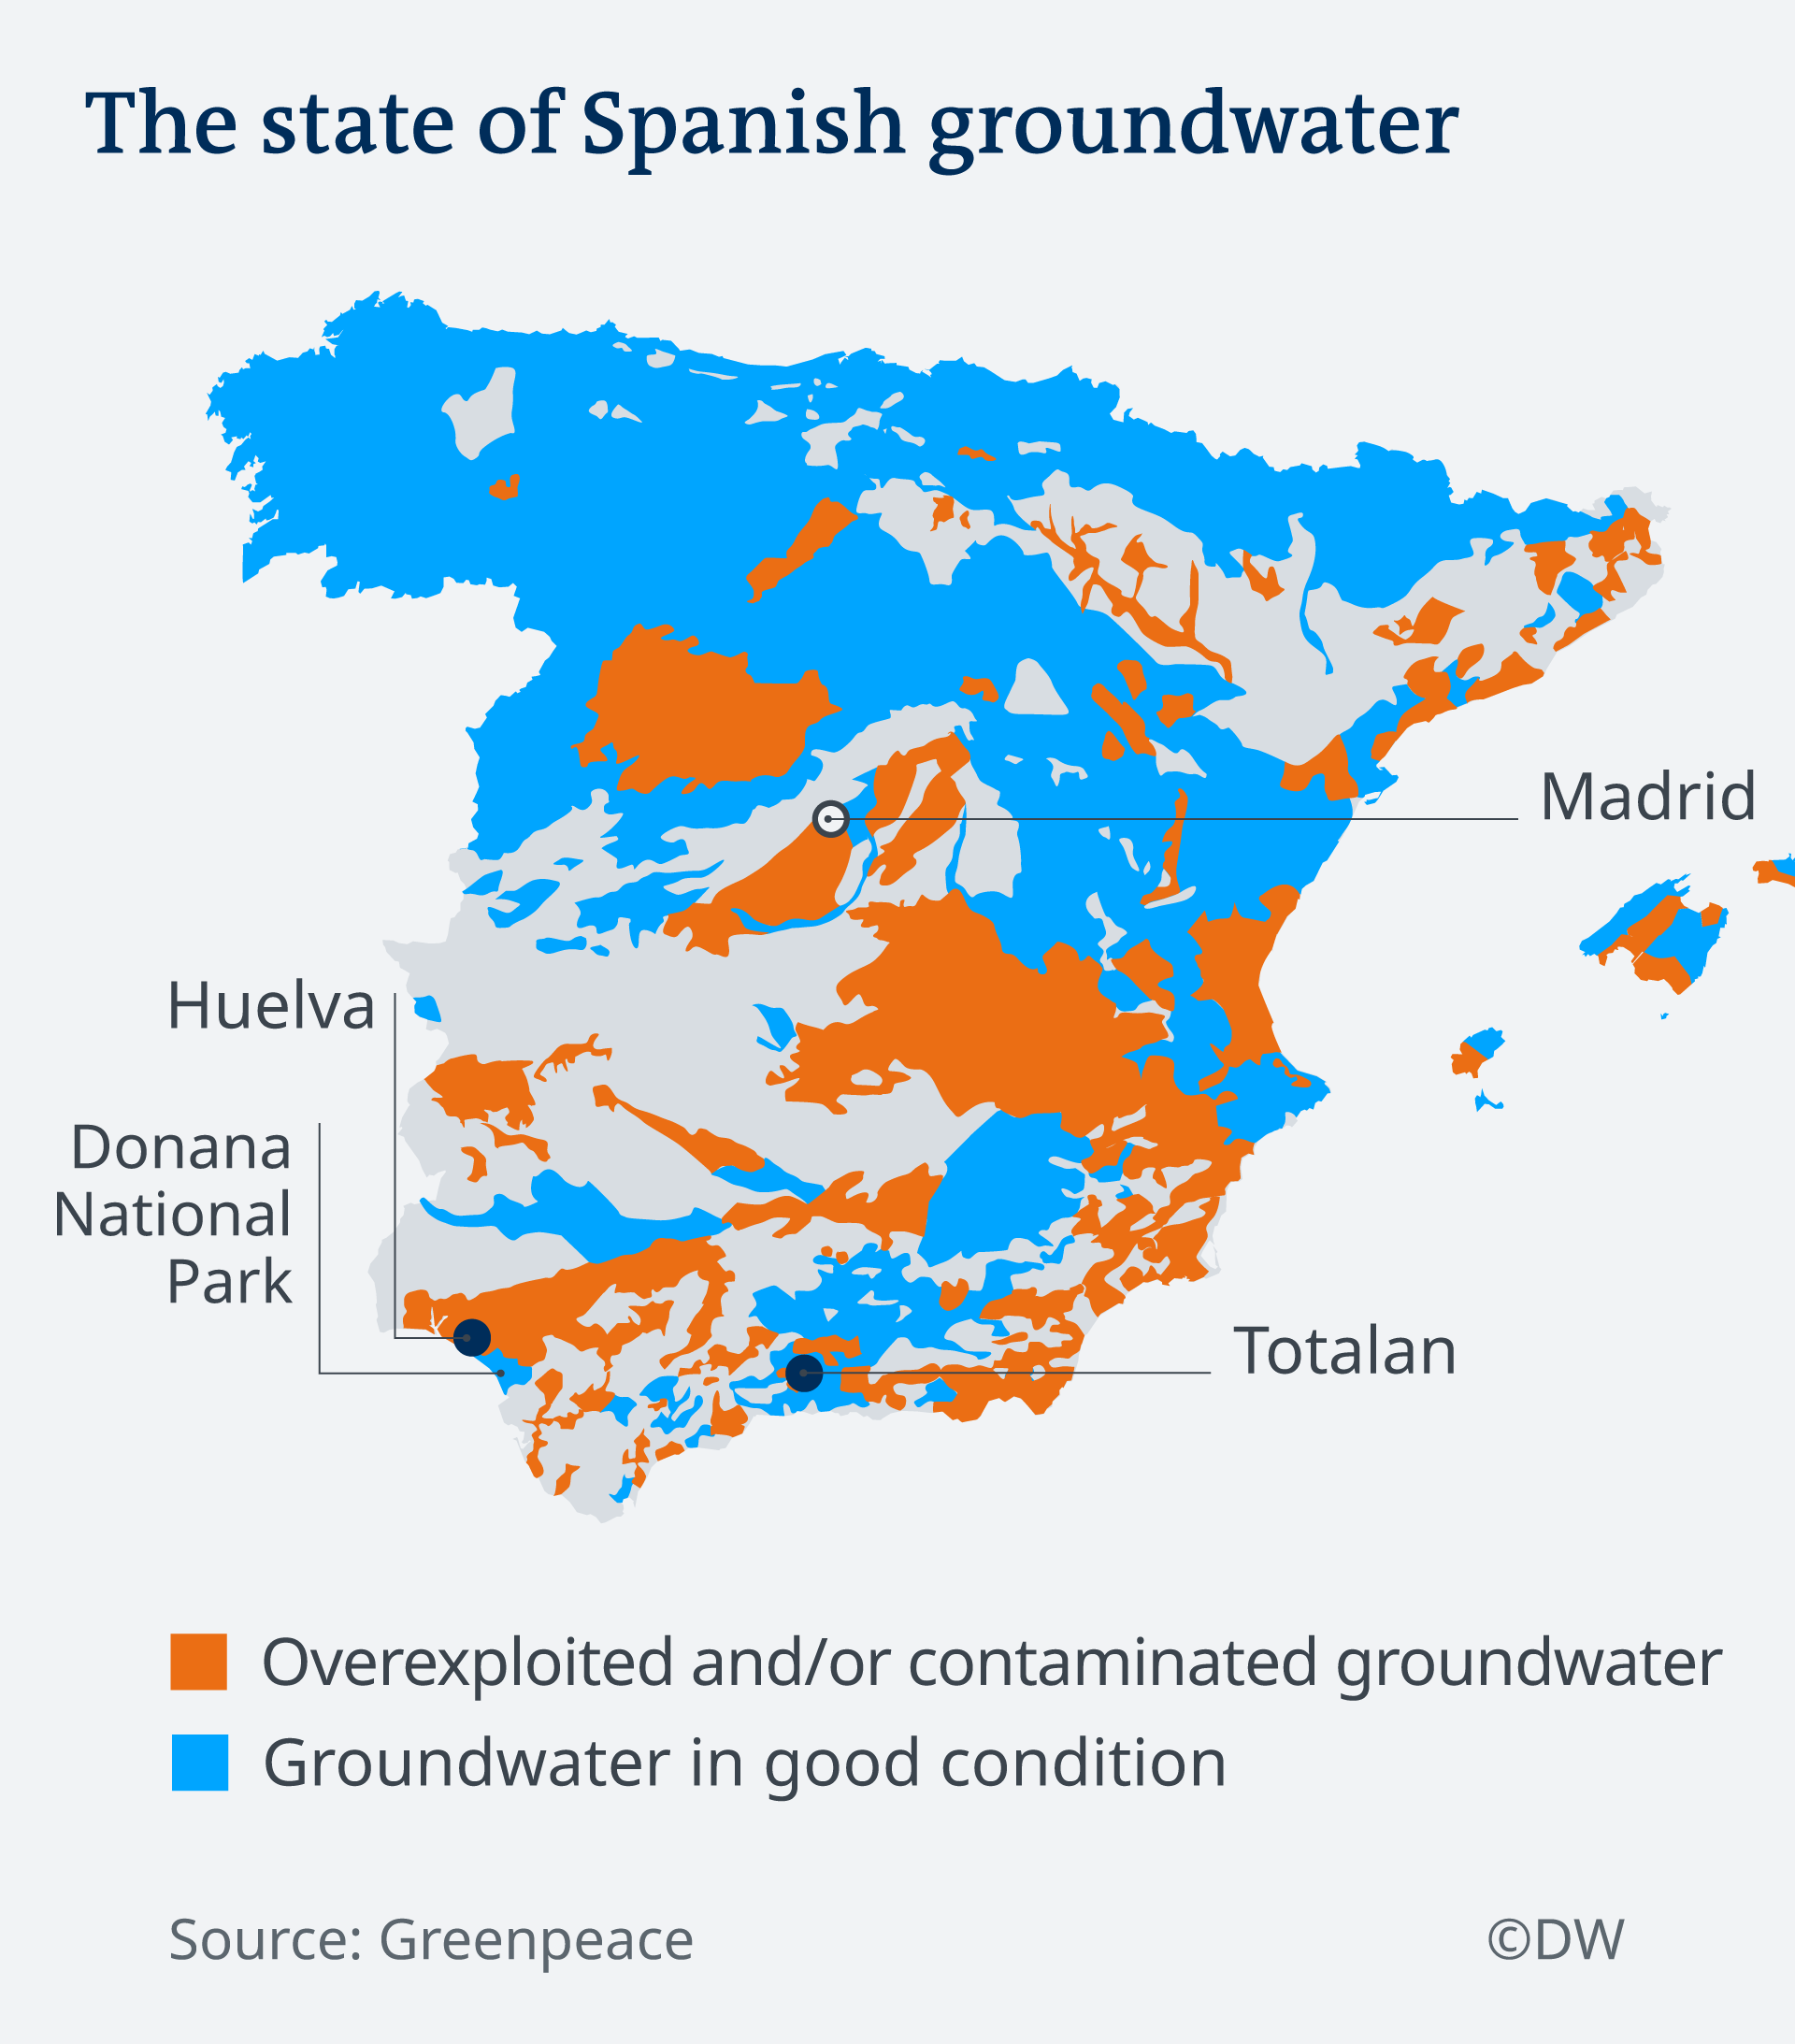 A map of Spain's groundwater, showing overexploited areas and those still in good condition